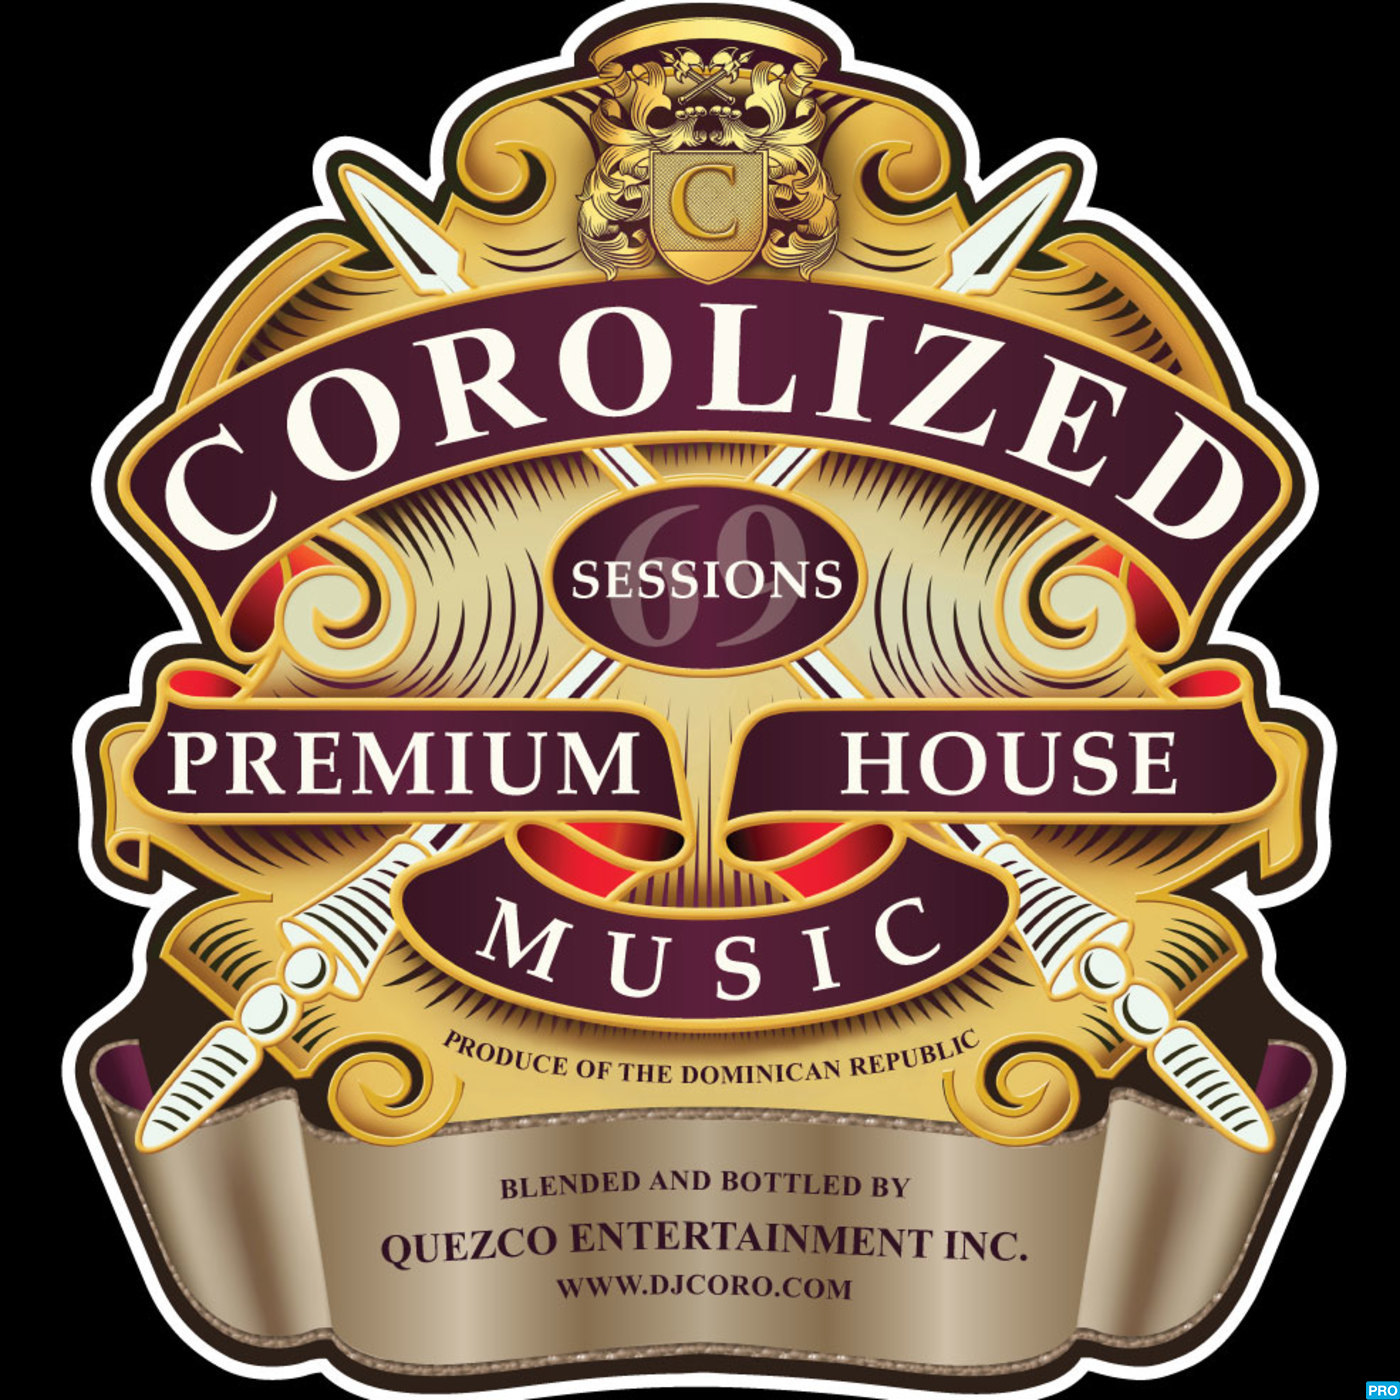 Corolized Sessions